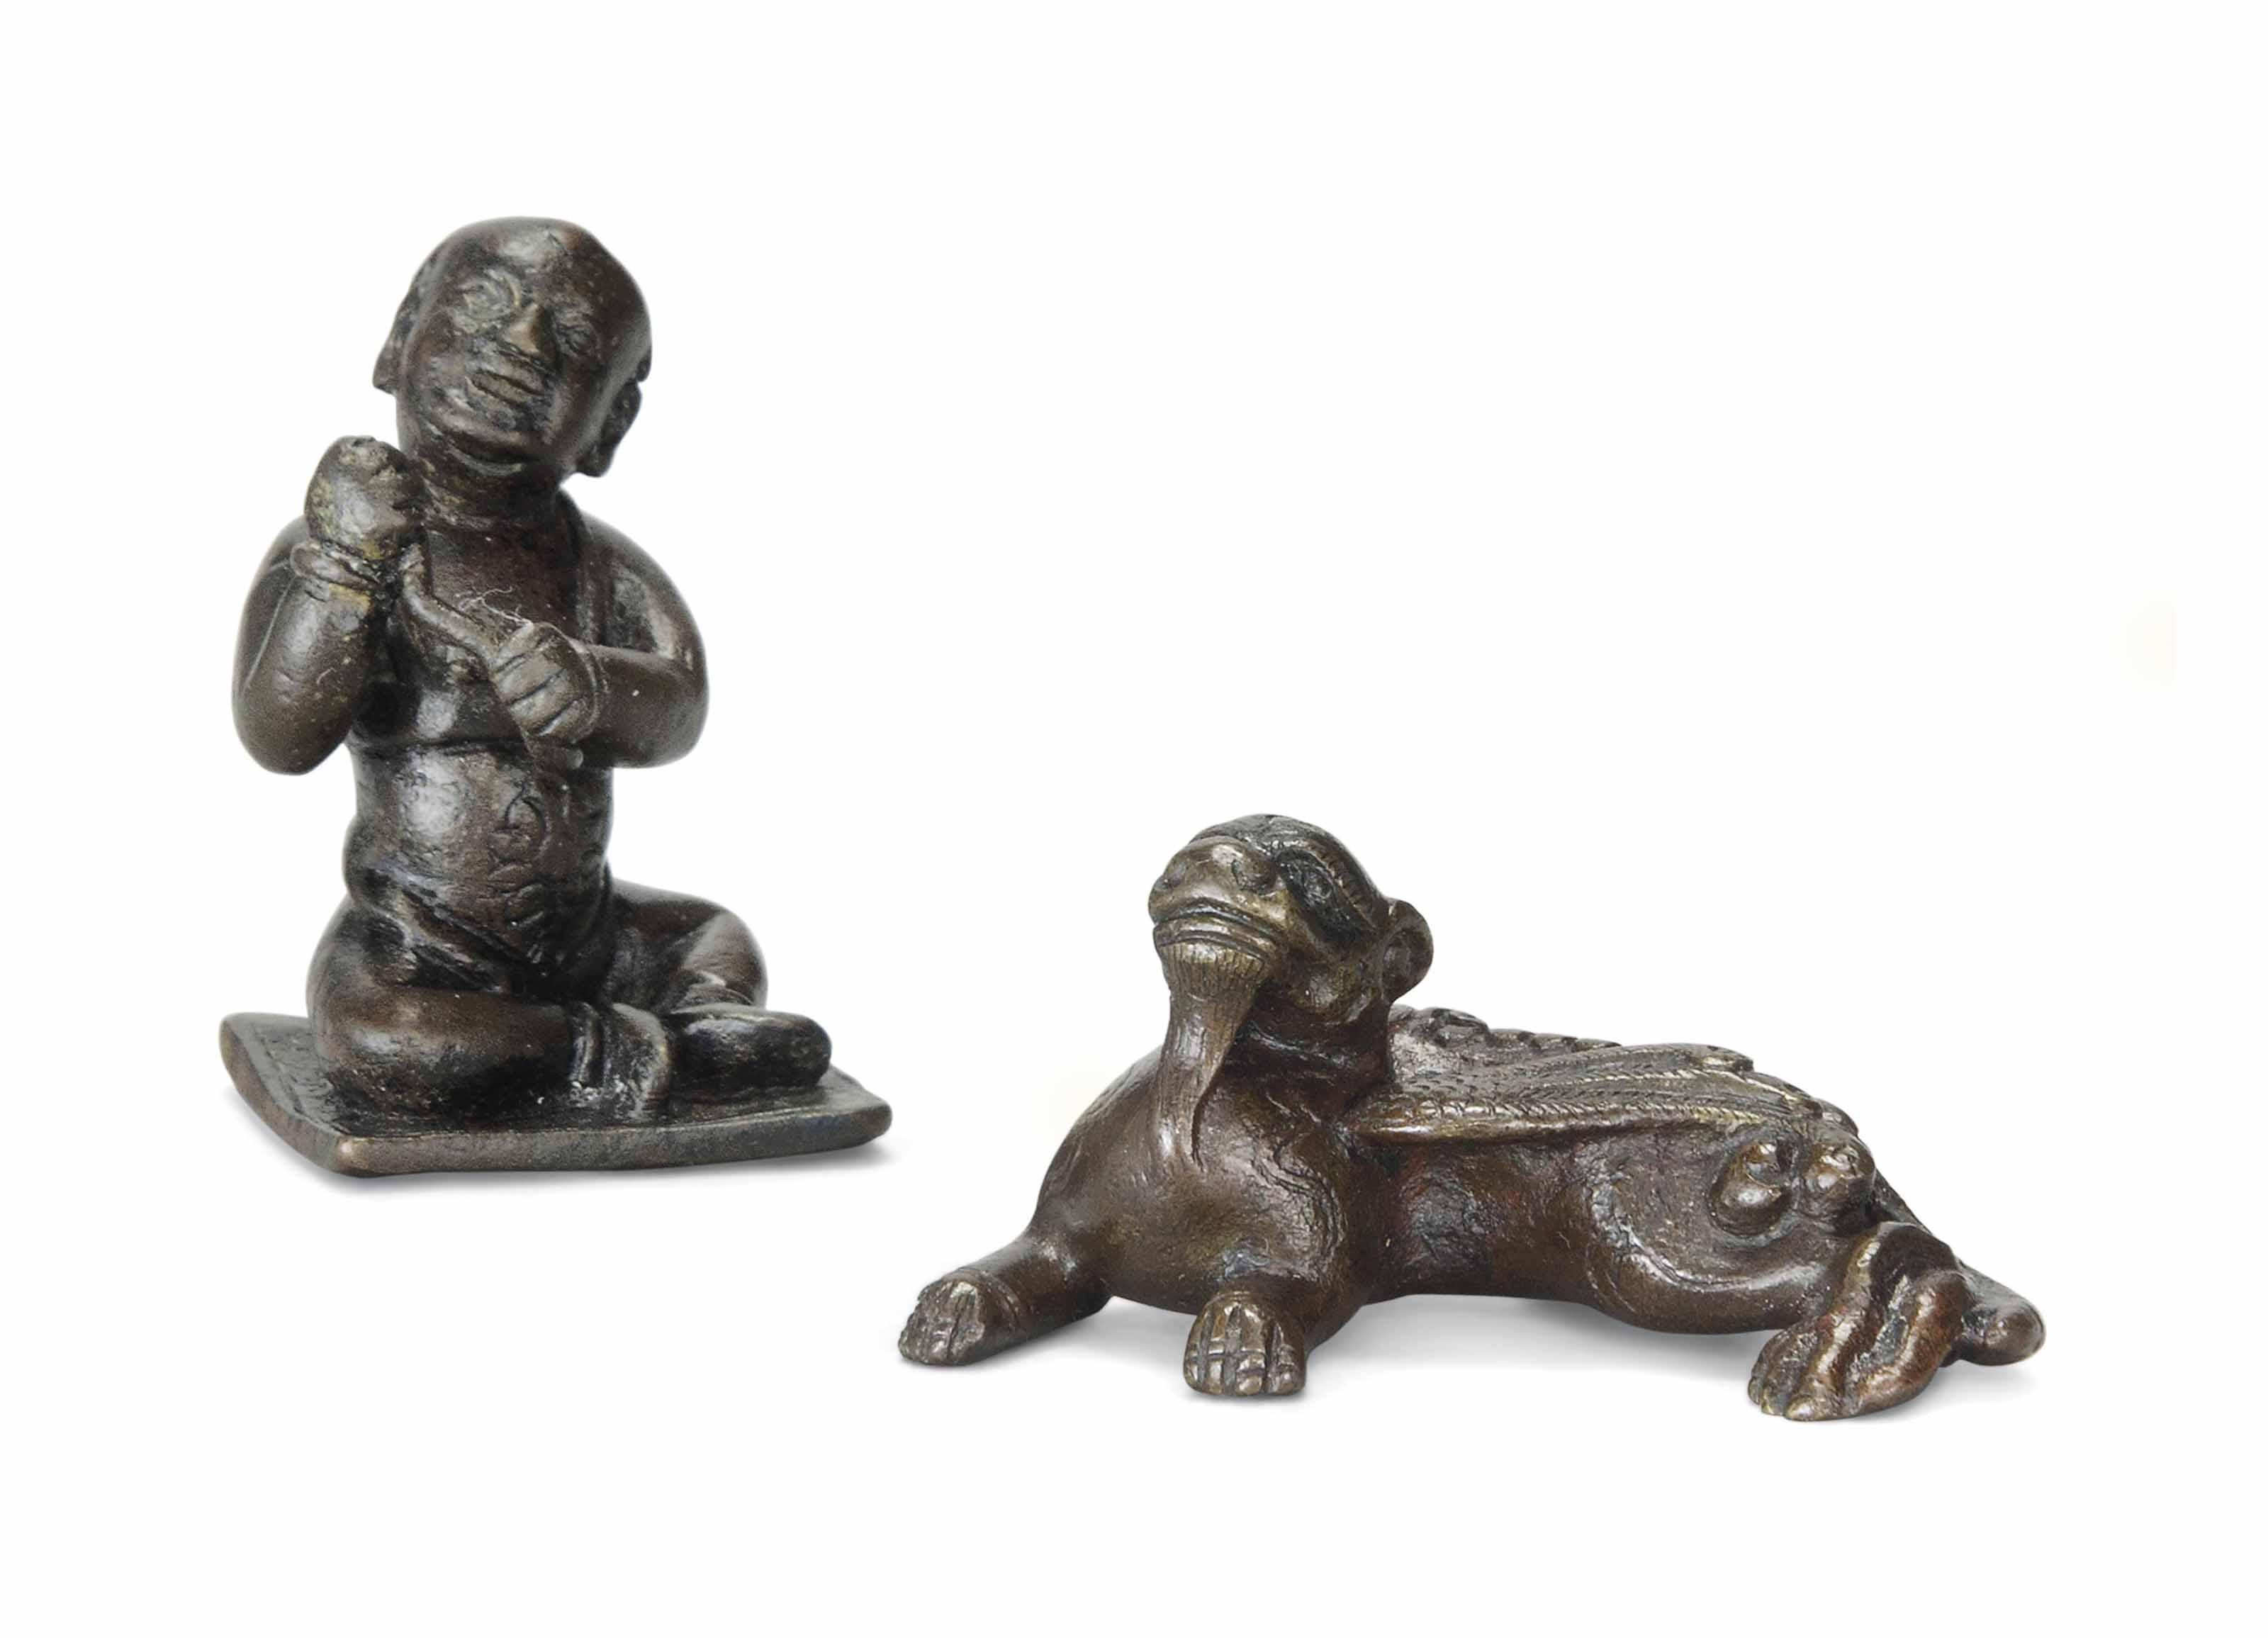 A BRONZE FIGURE OF A MYTHICAL